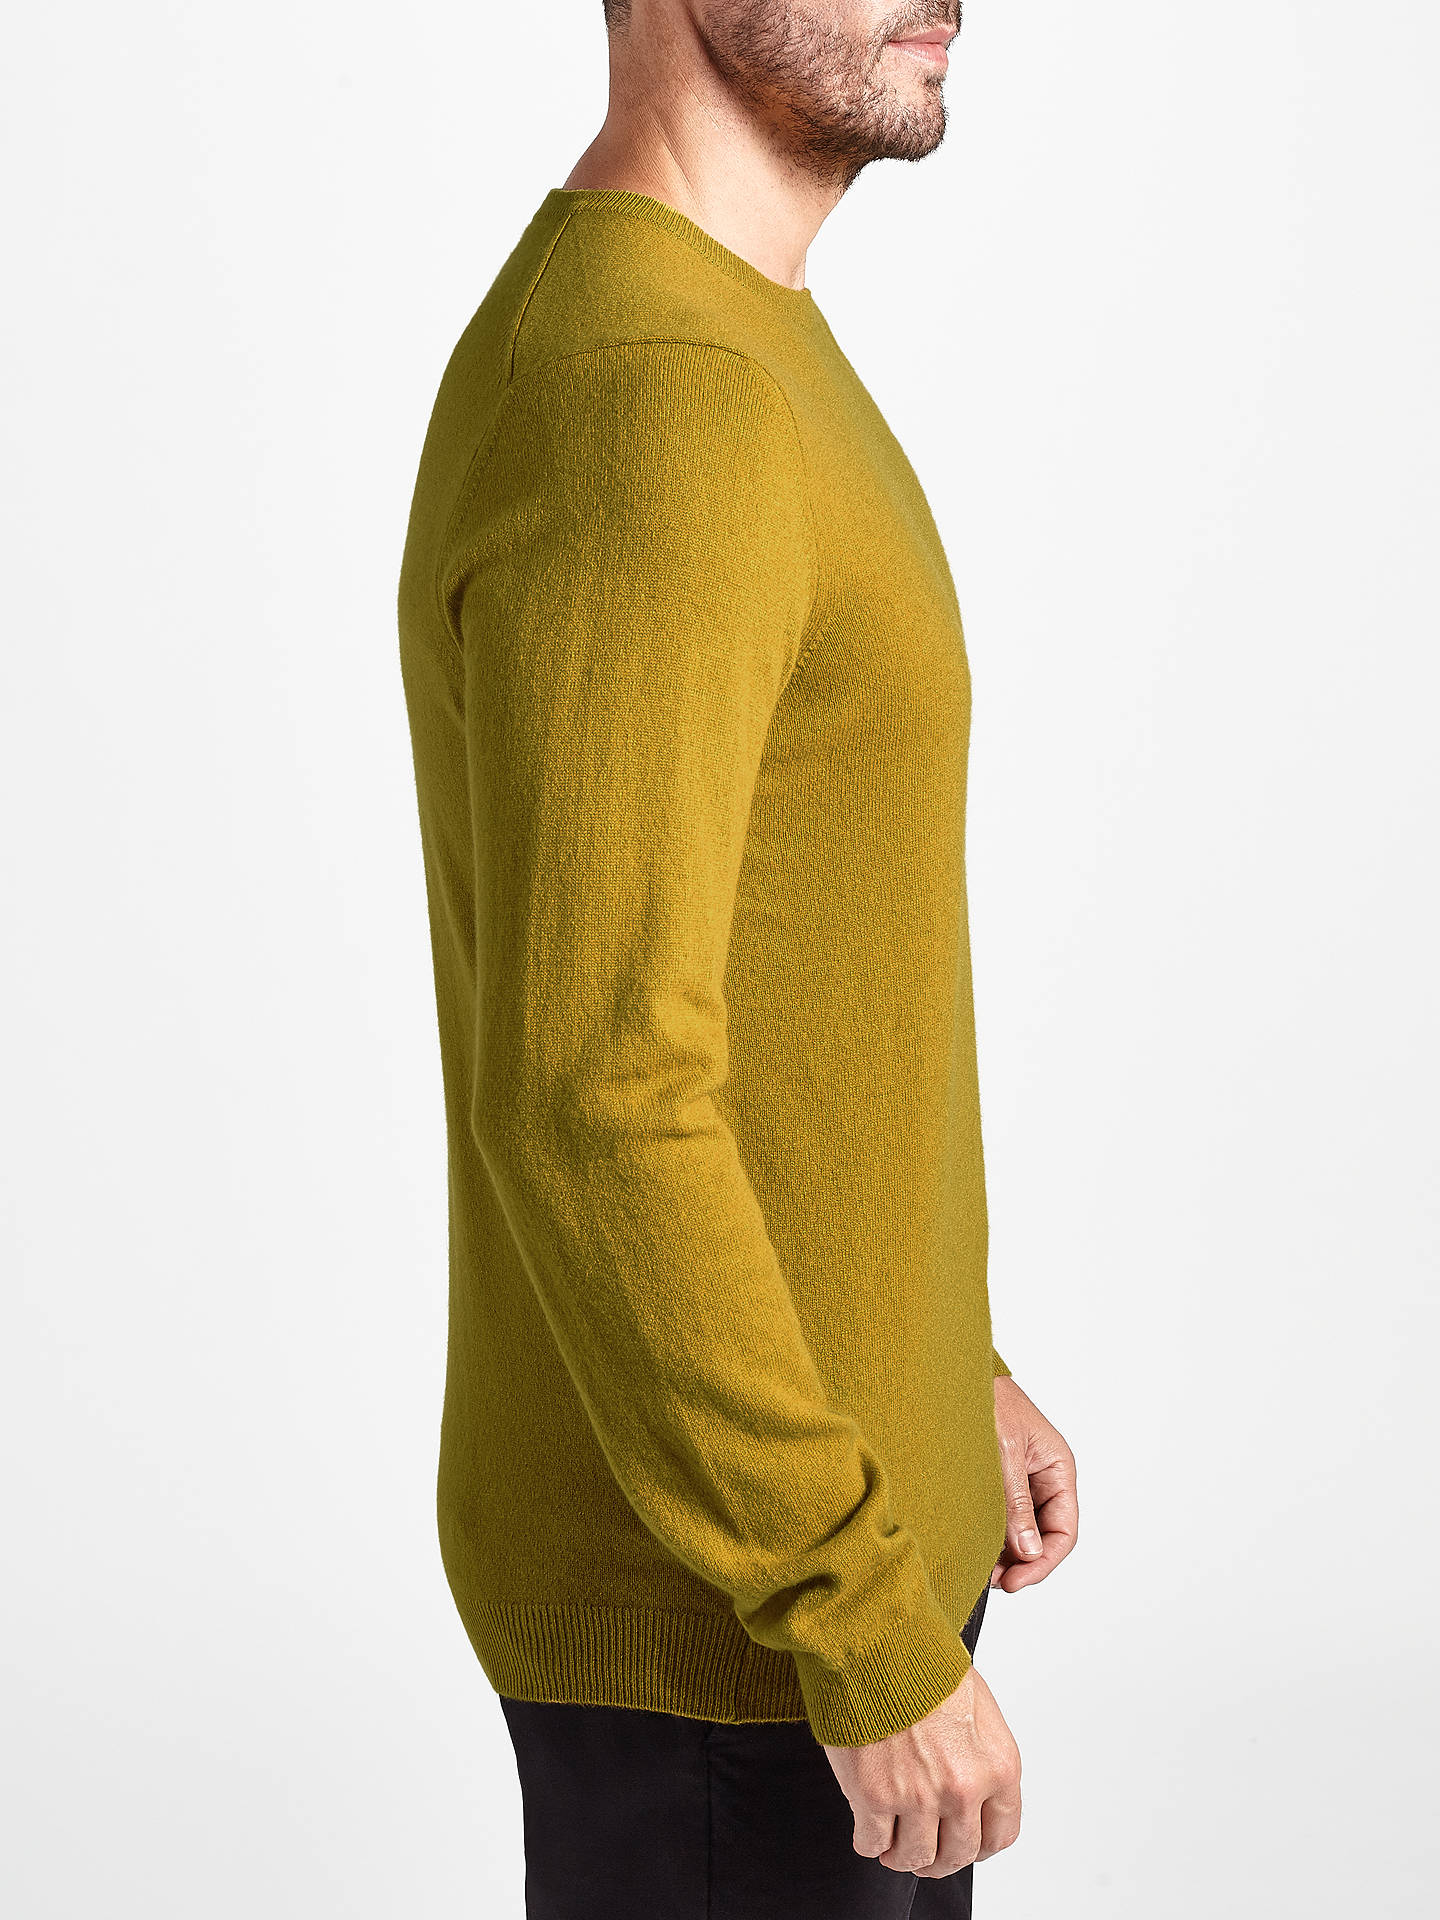 BuyJohn Lewis Italian Cashmere Crew Neck Jumper, Yellow, S Online at johnlewis.com